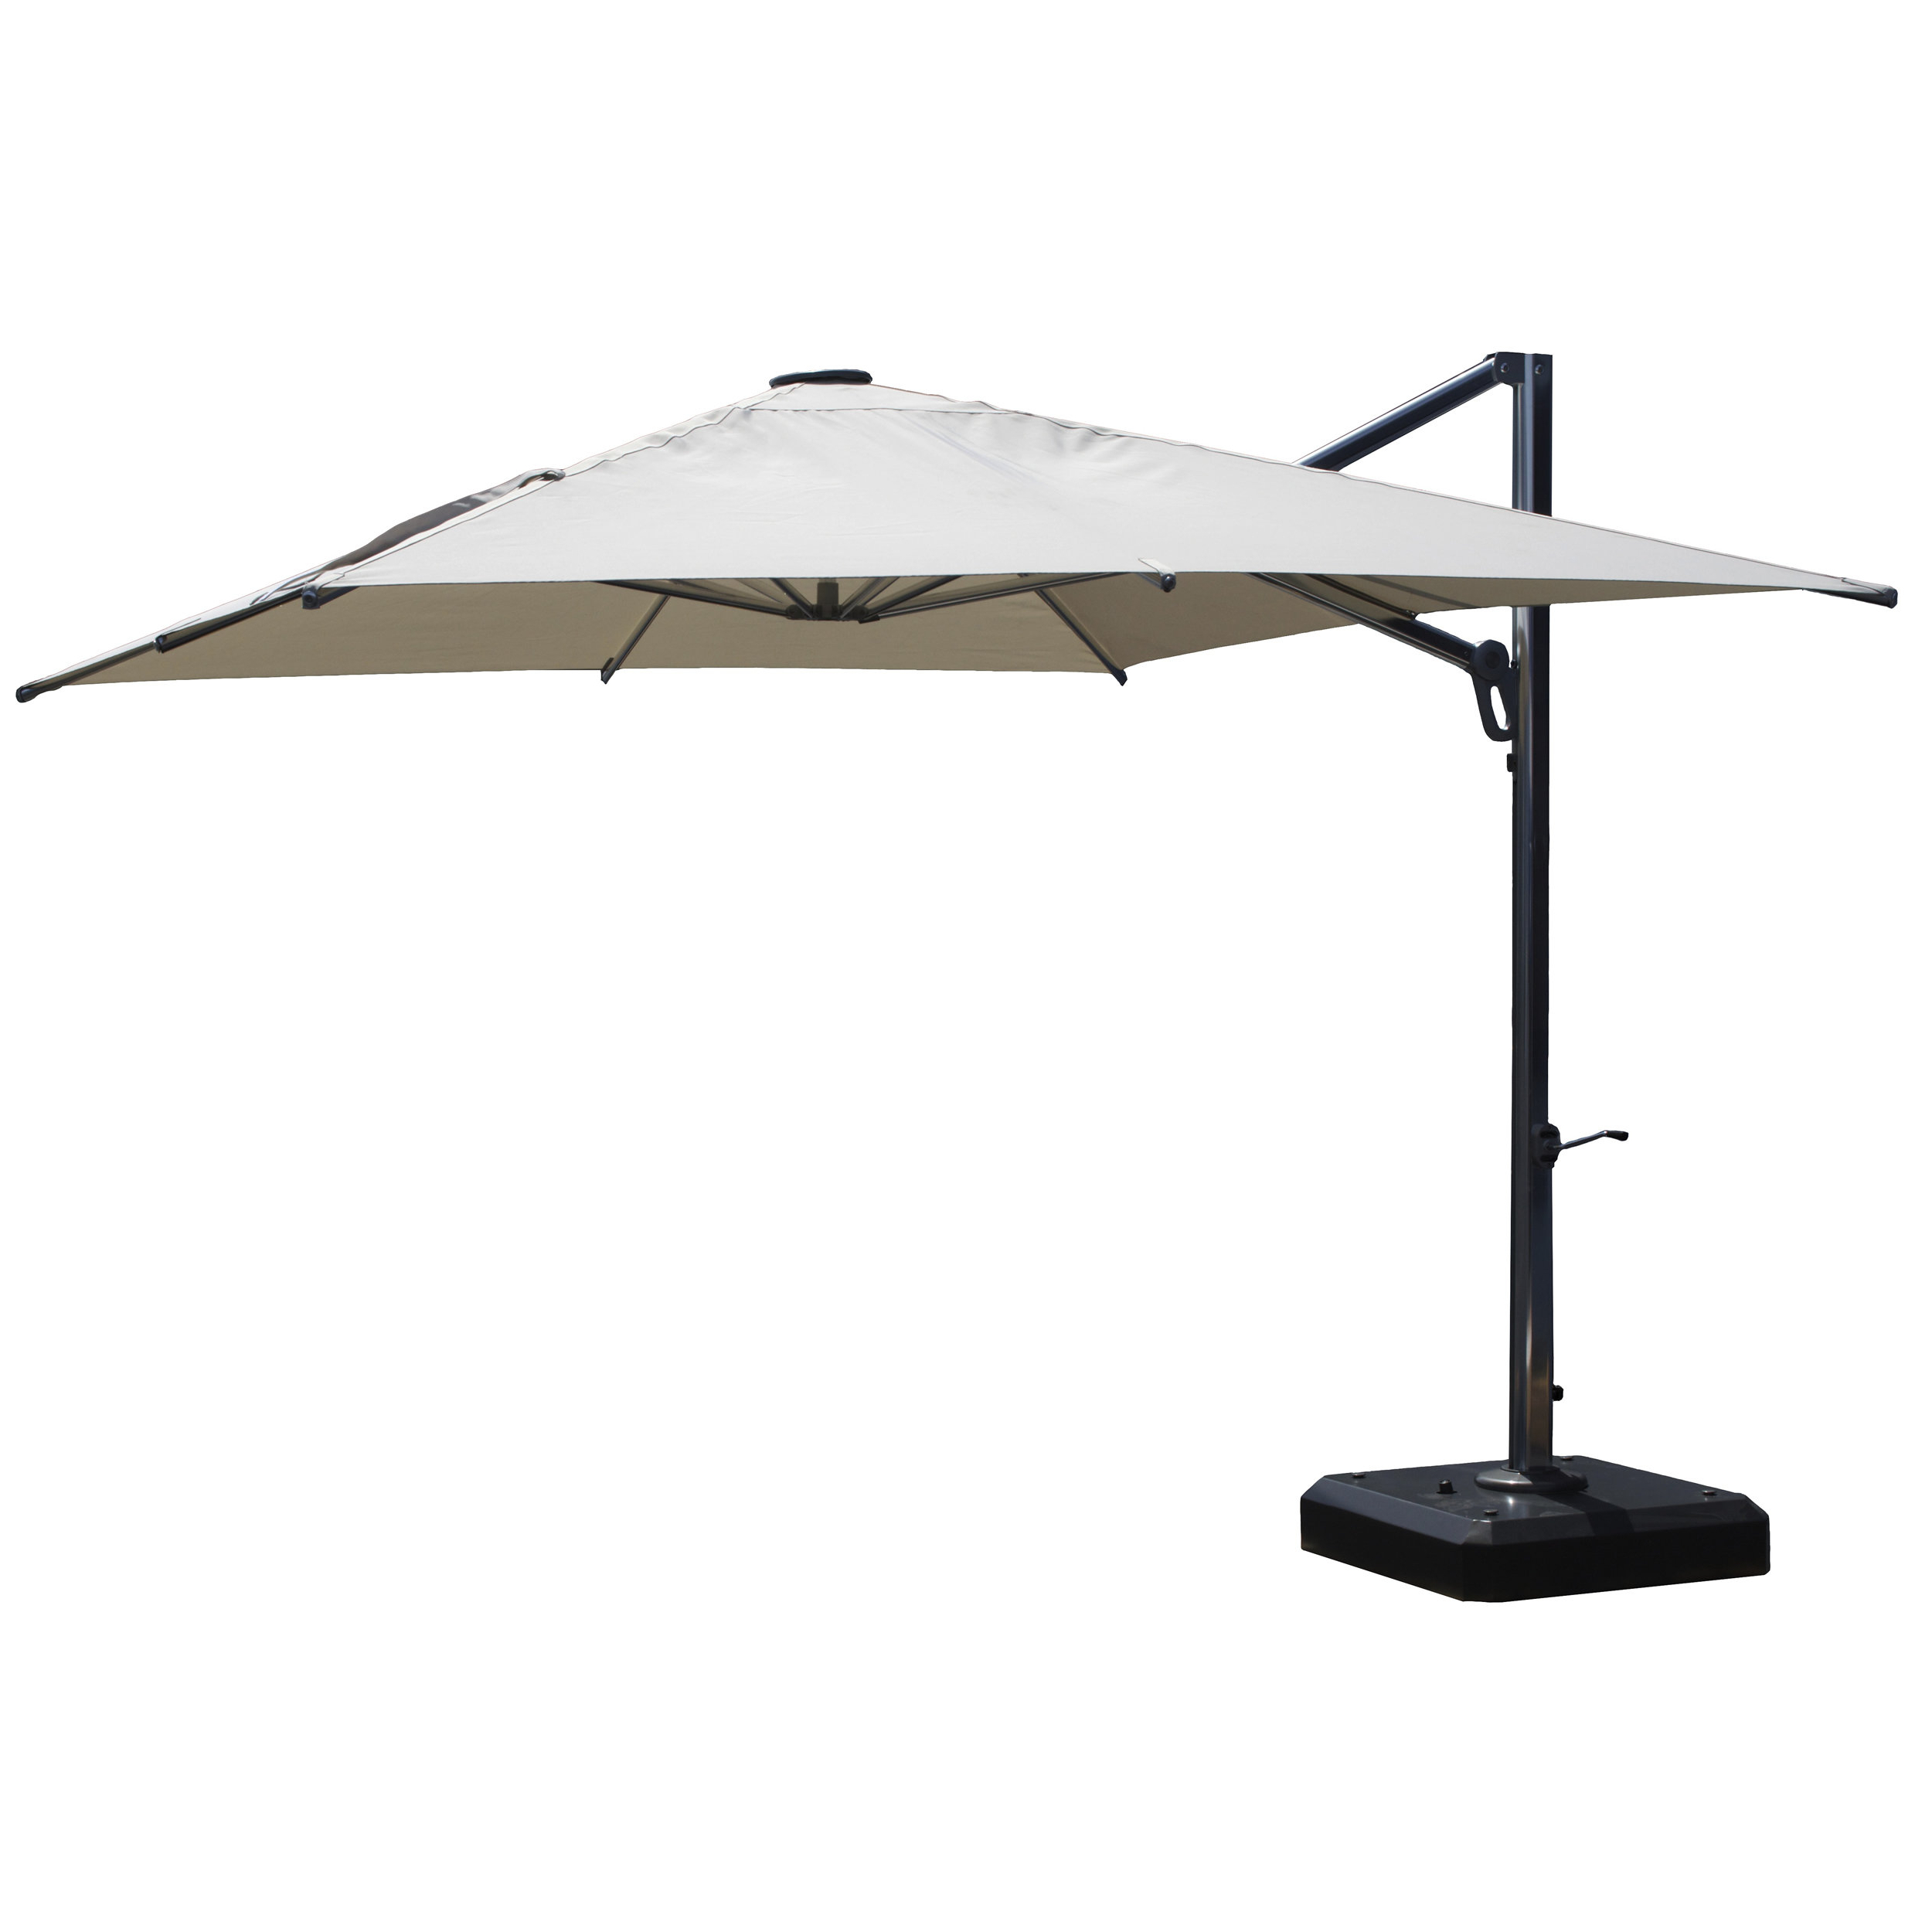 Well Known Spitler Square Cantilever Umbrellas Intended For 10' Square Cantilever Umbrella (View 5 of 20)